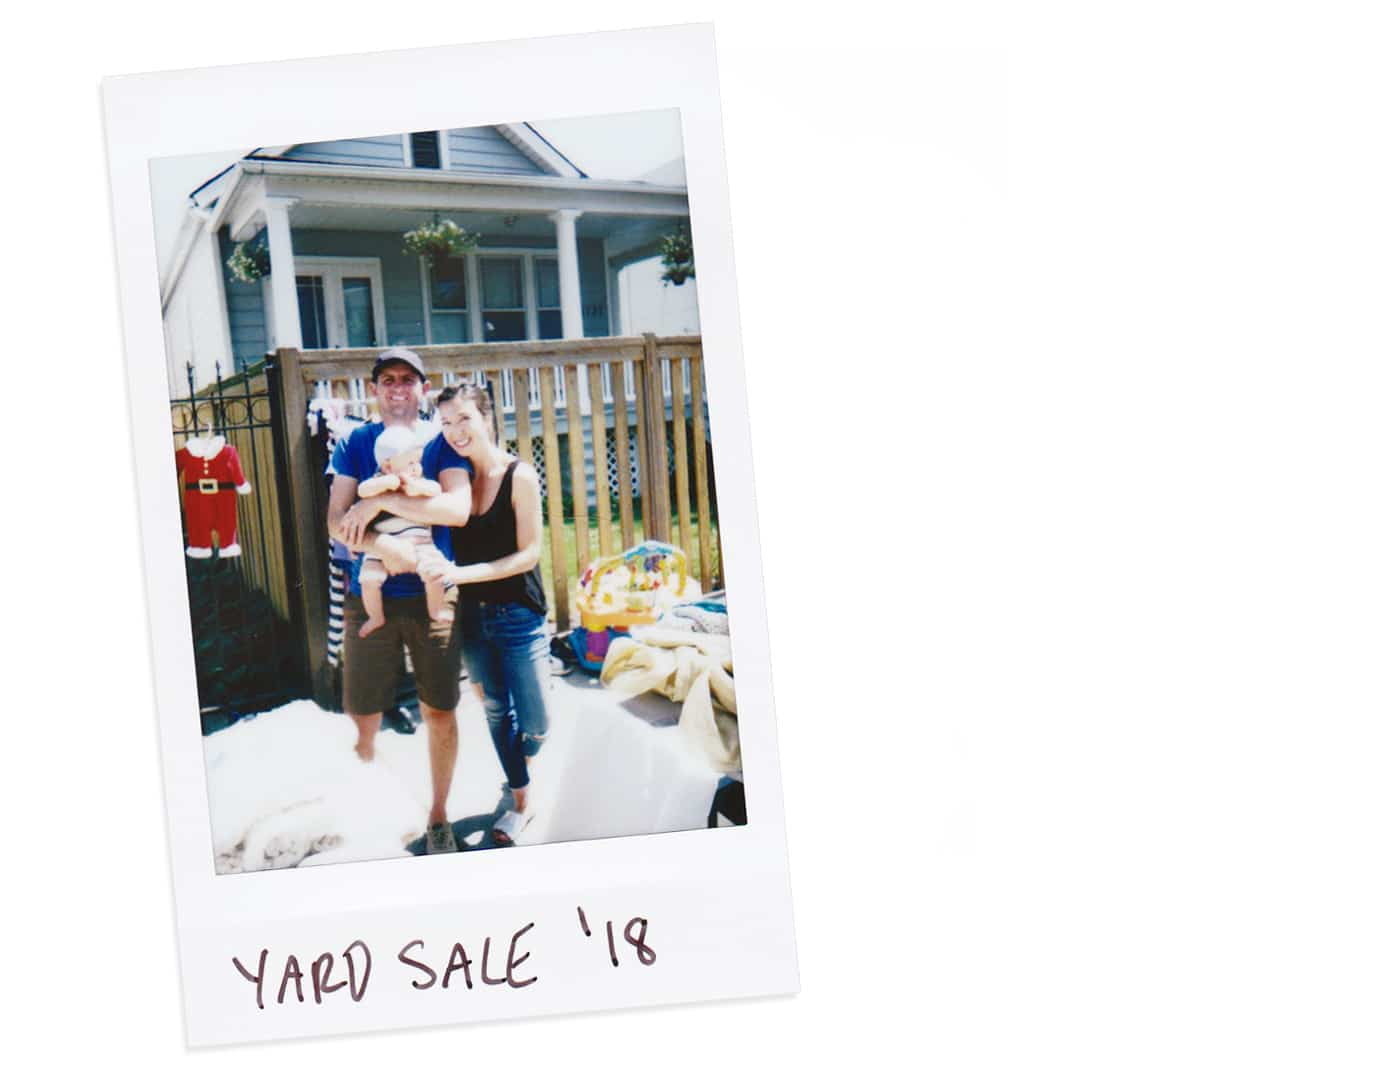 A Decades? Worth of Yard Sale Experience